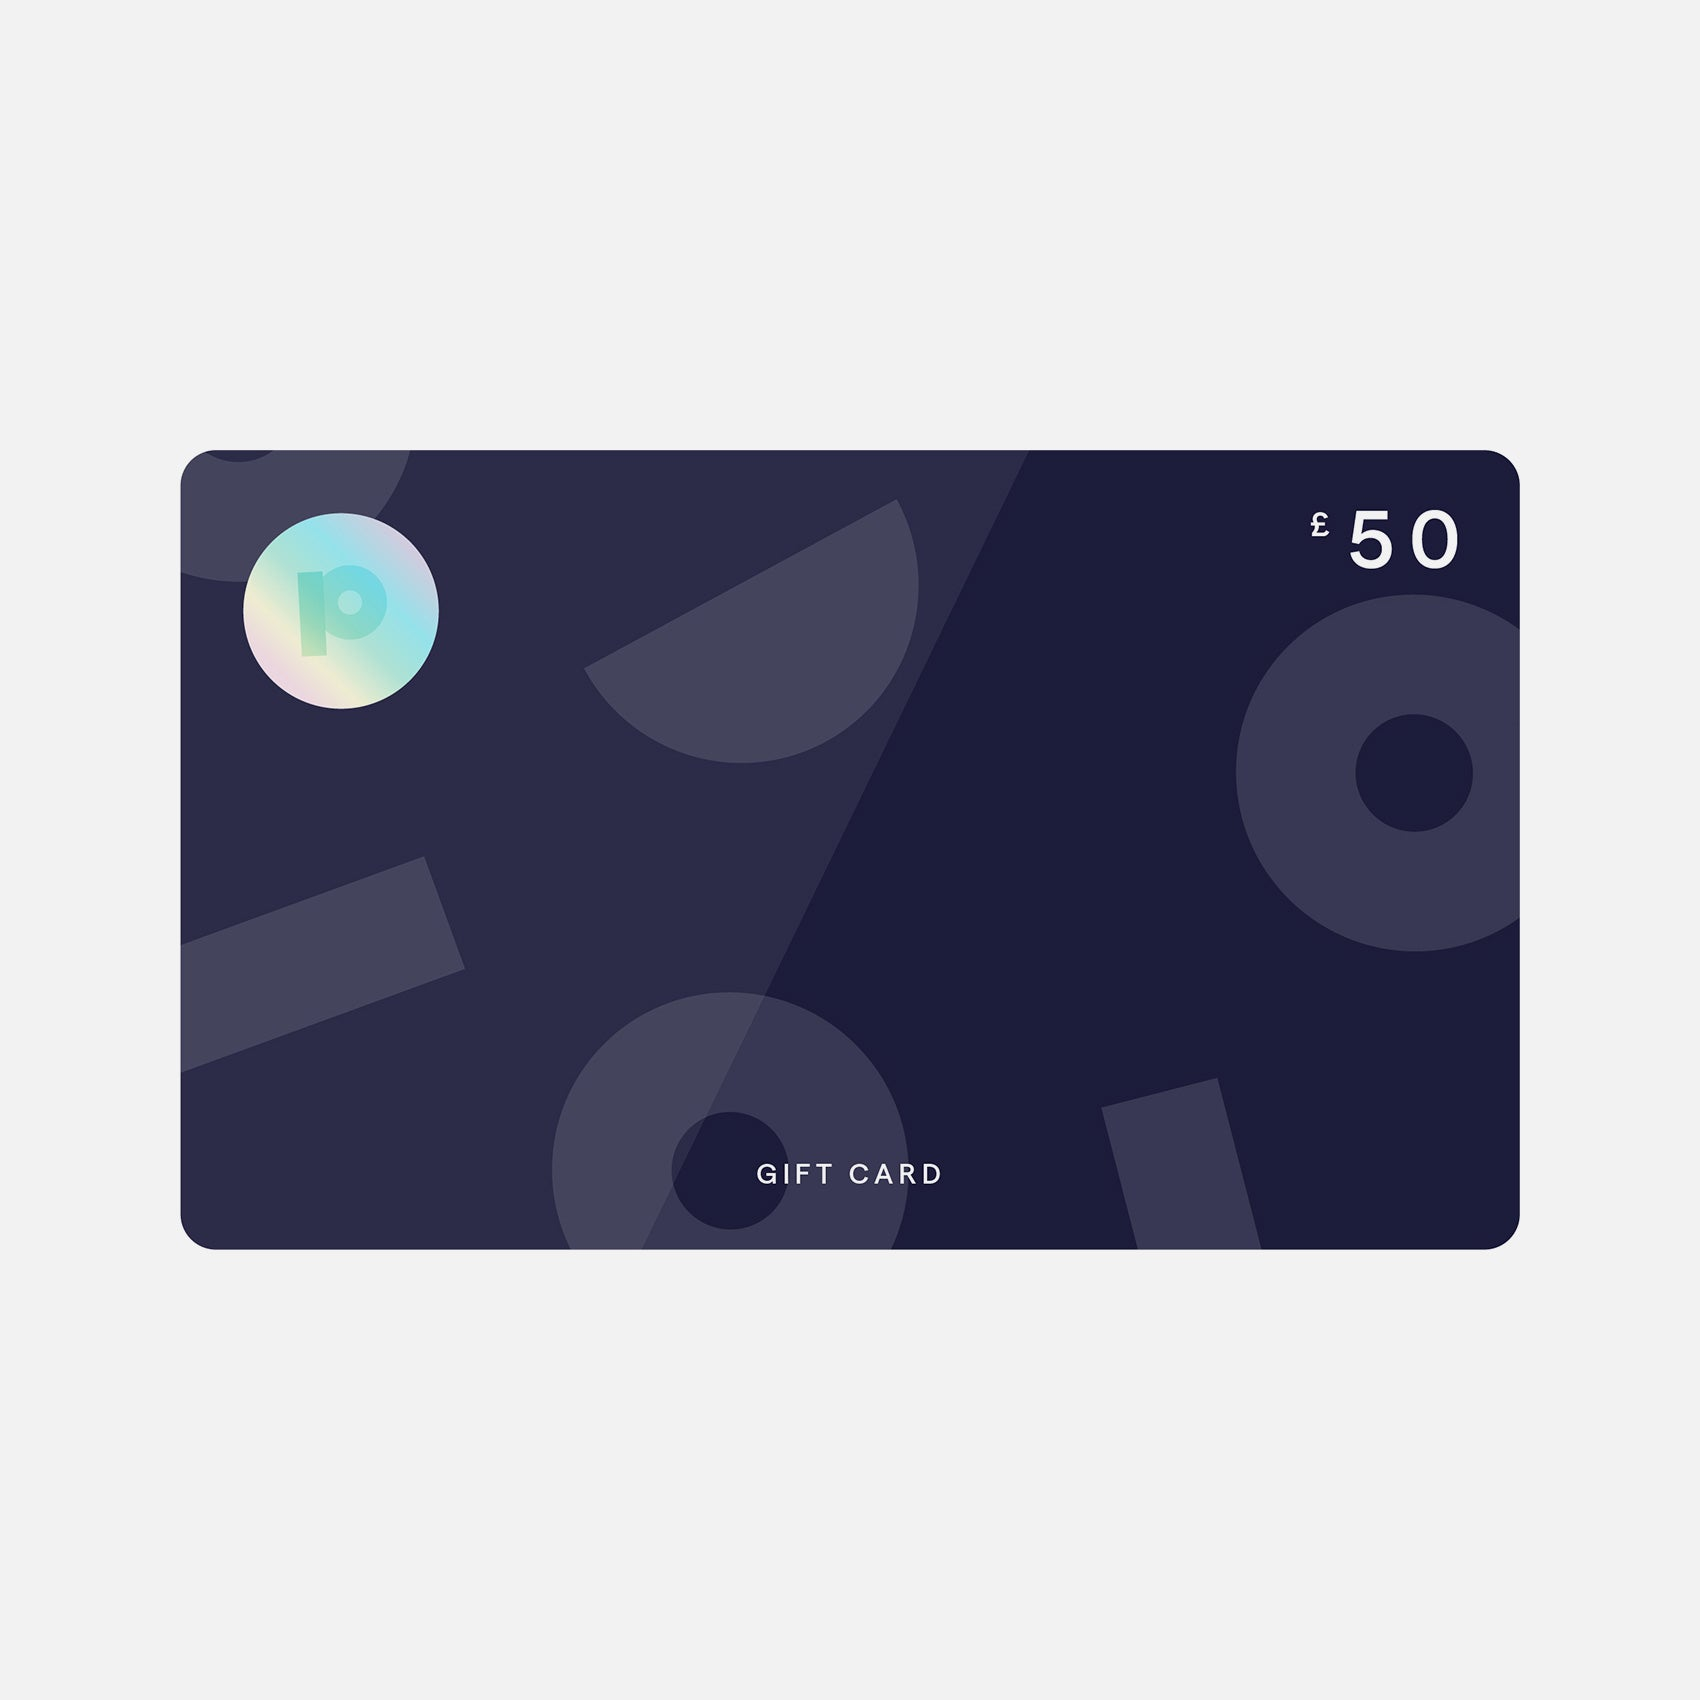 Gift card from Pea £50